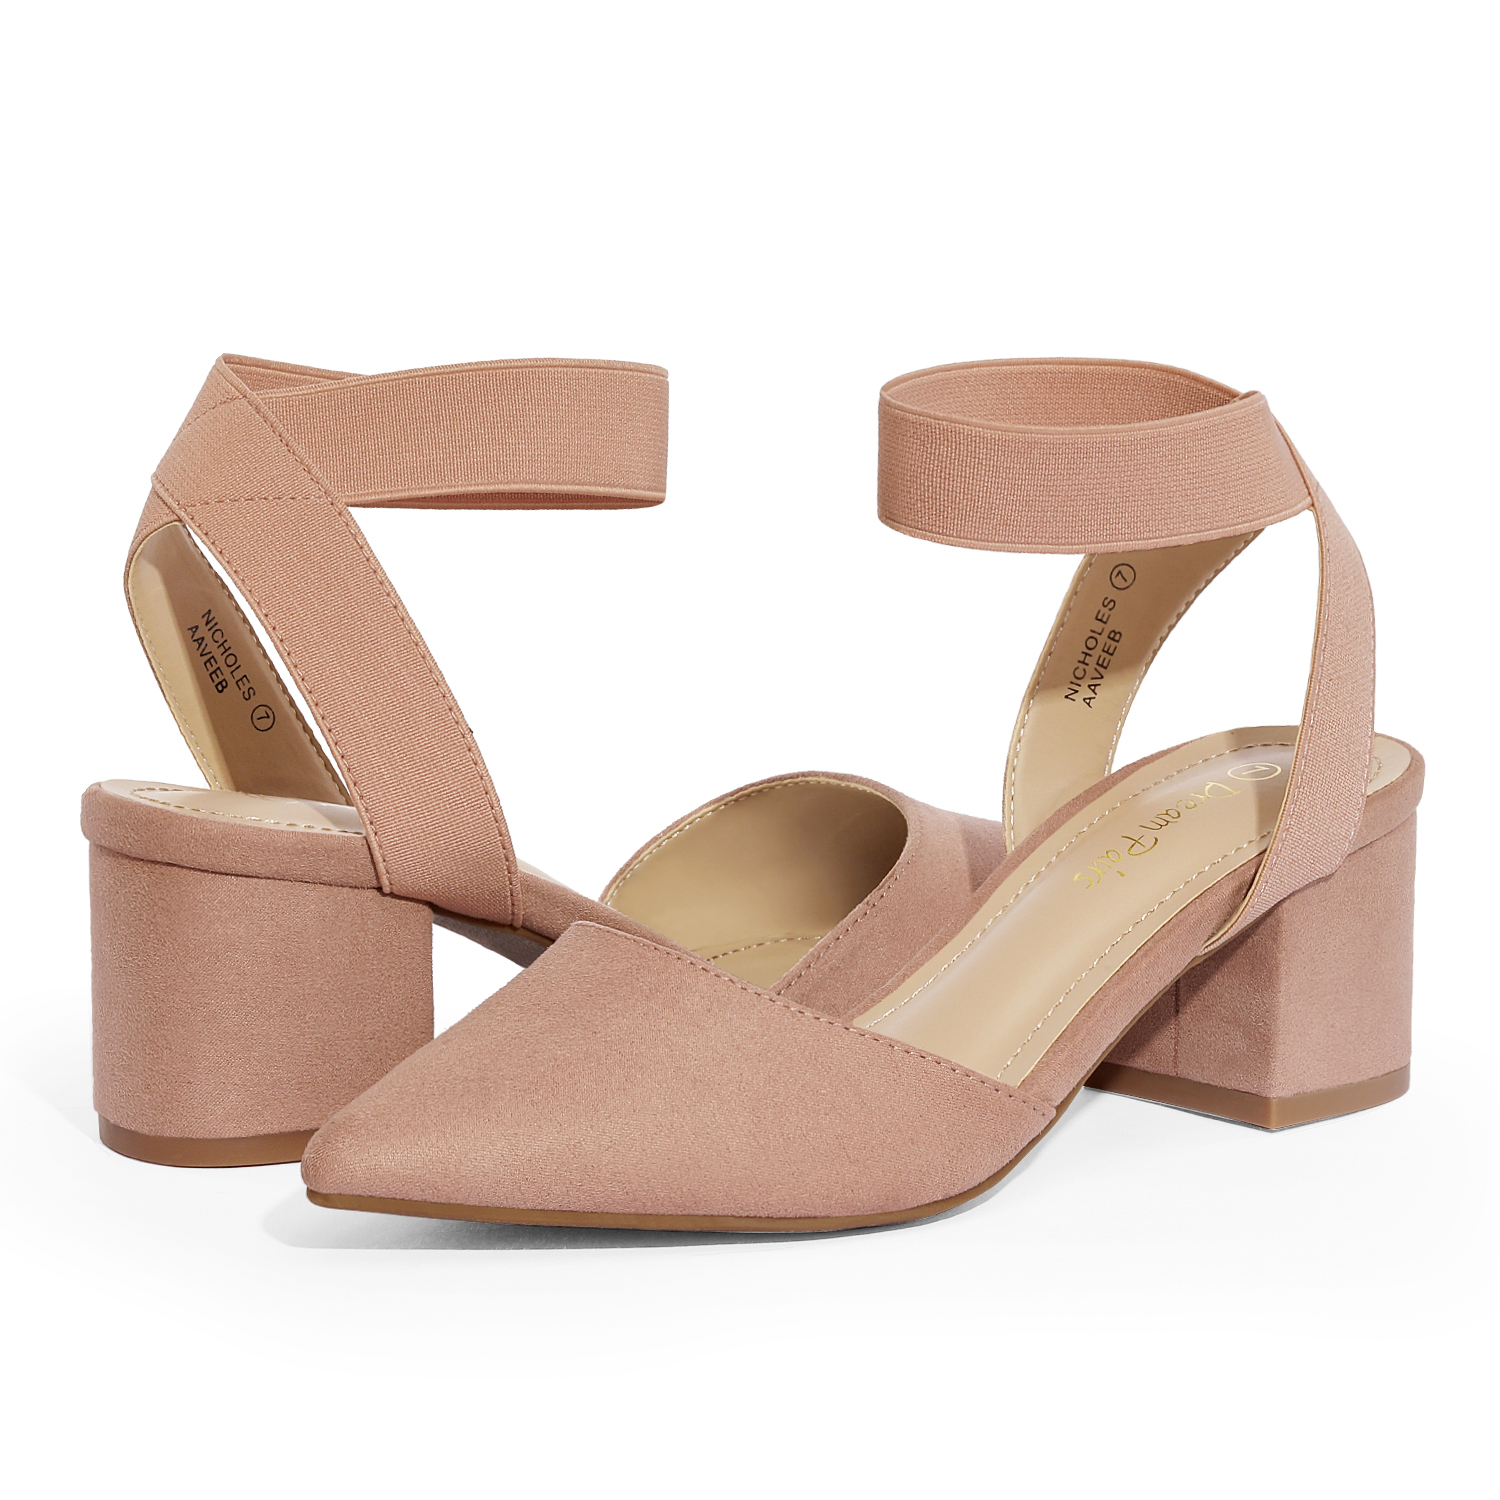 thumbnail 15 - Women-039-s-Elastic-Ankle-Strap-Pointed-Toe-Pump-Shoes-Low-Chunky-Heel-Dress-Pumps